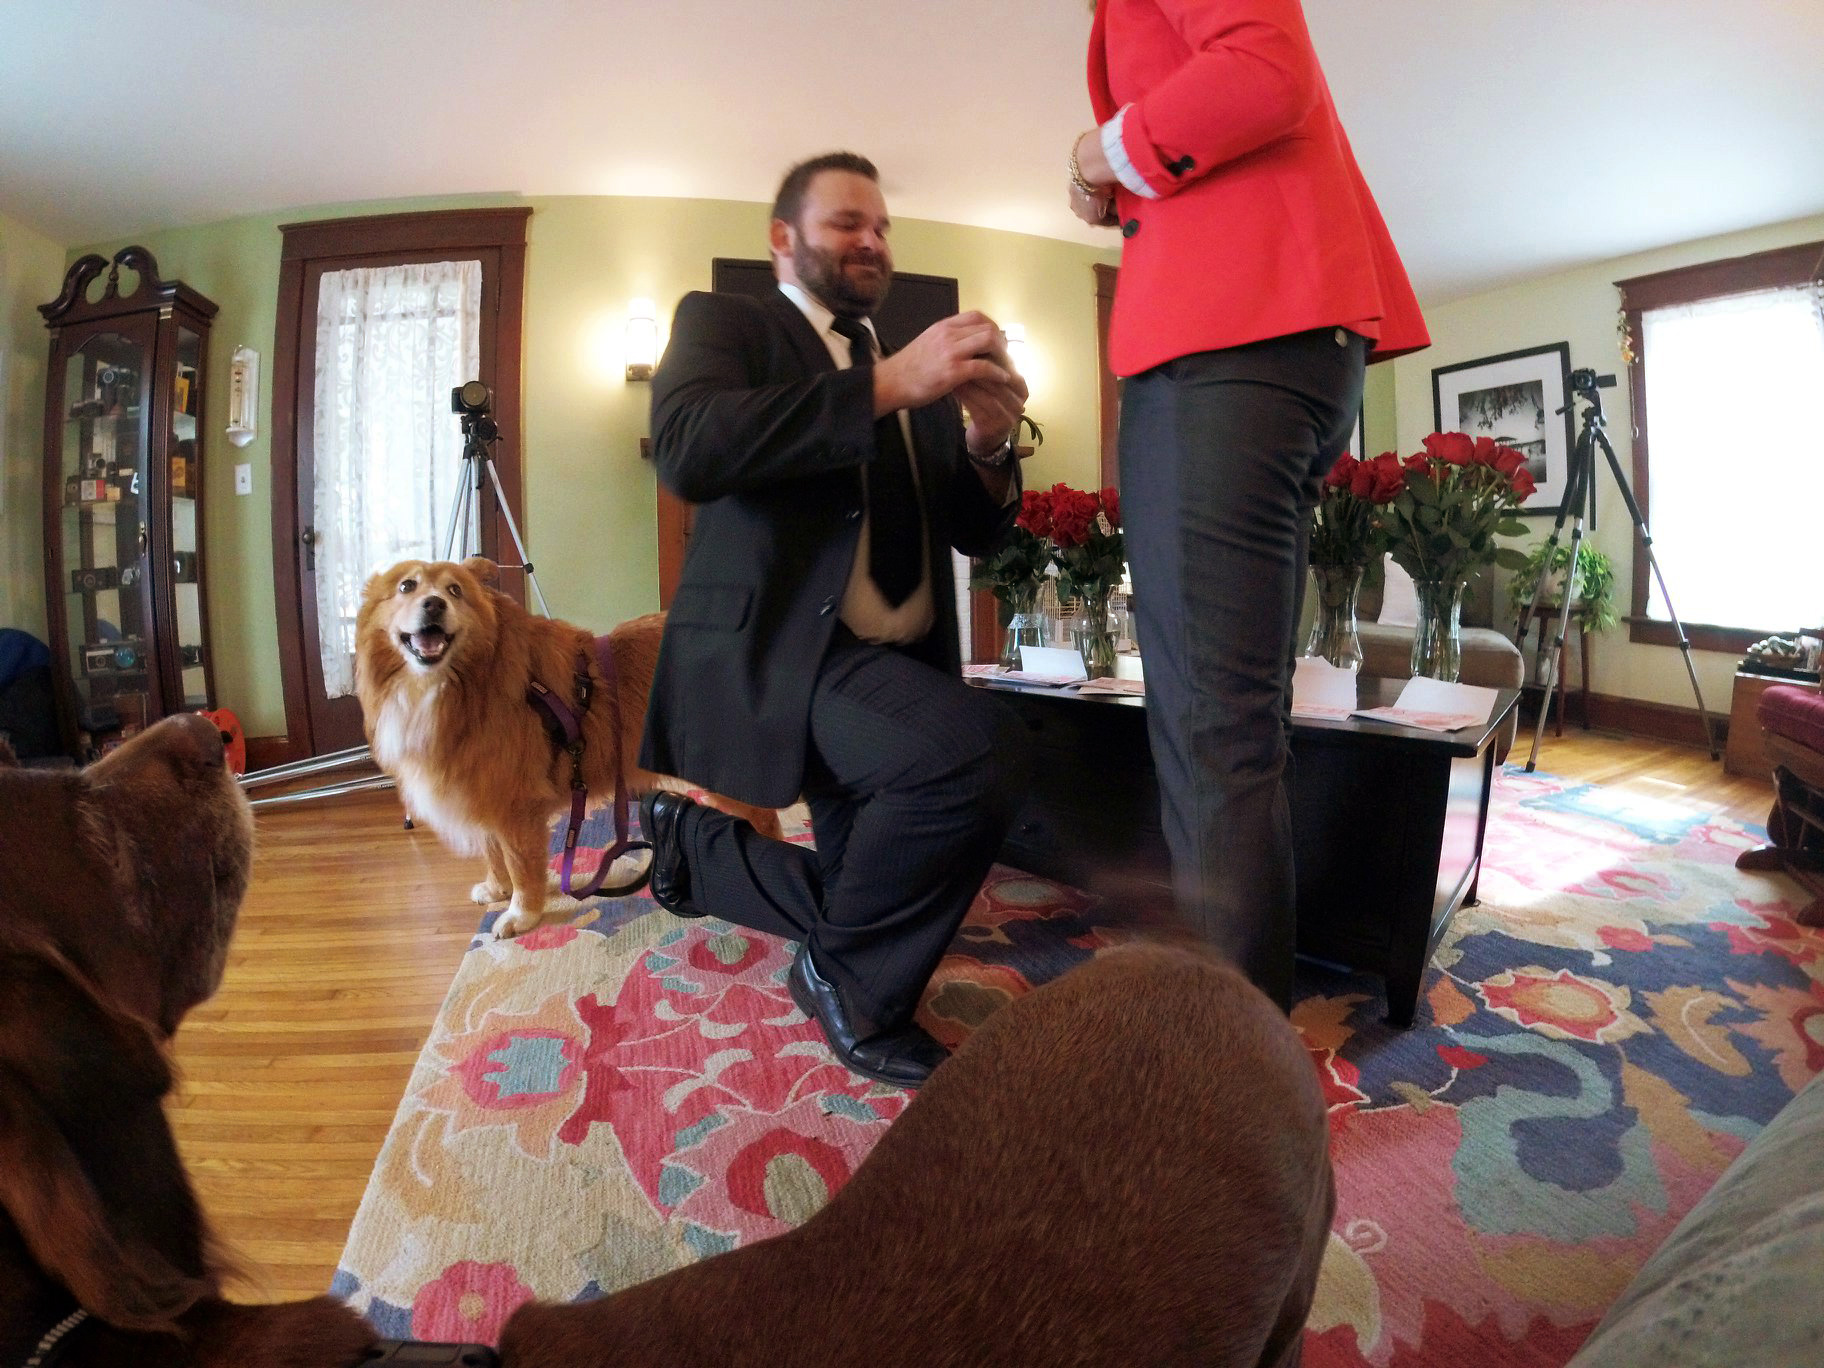 The doggies watch the proposal